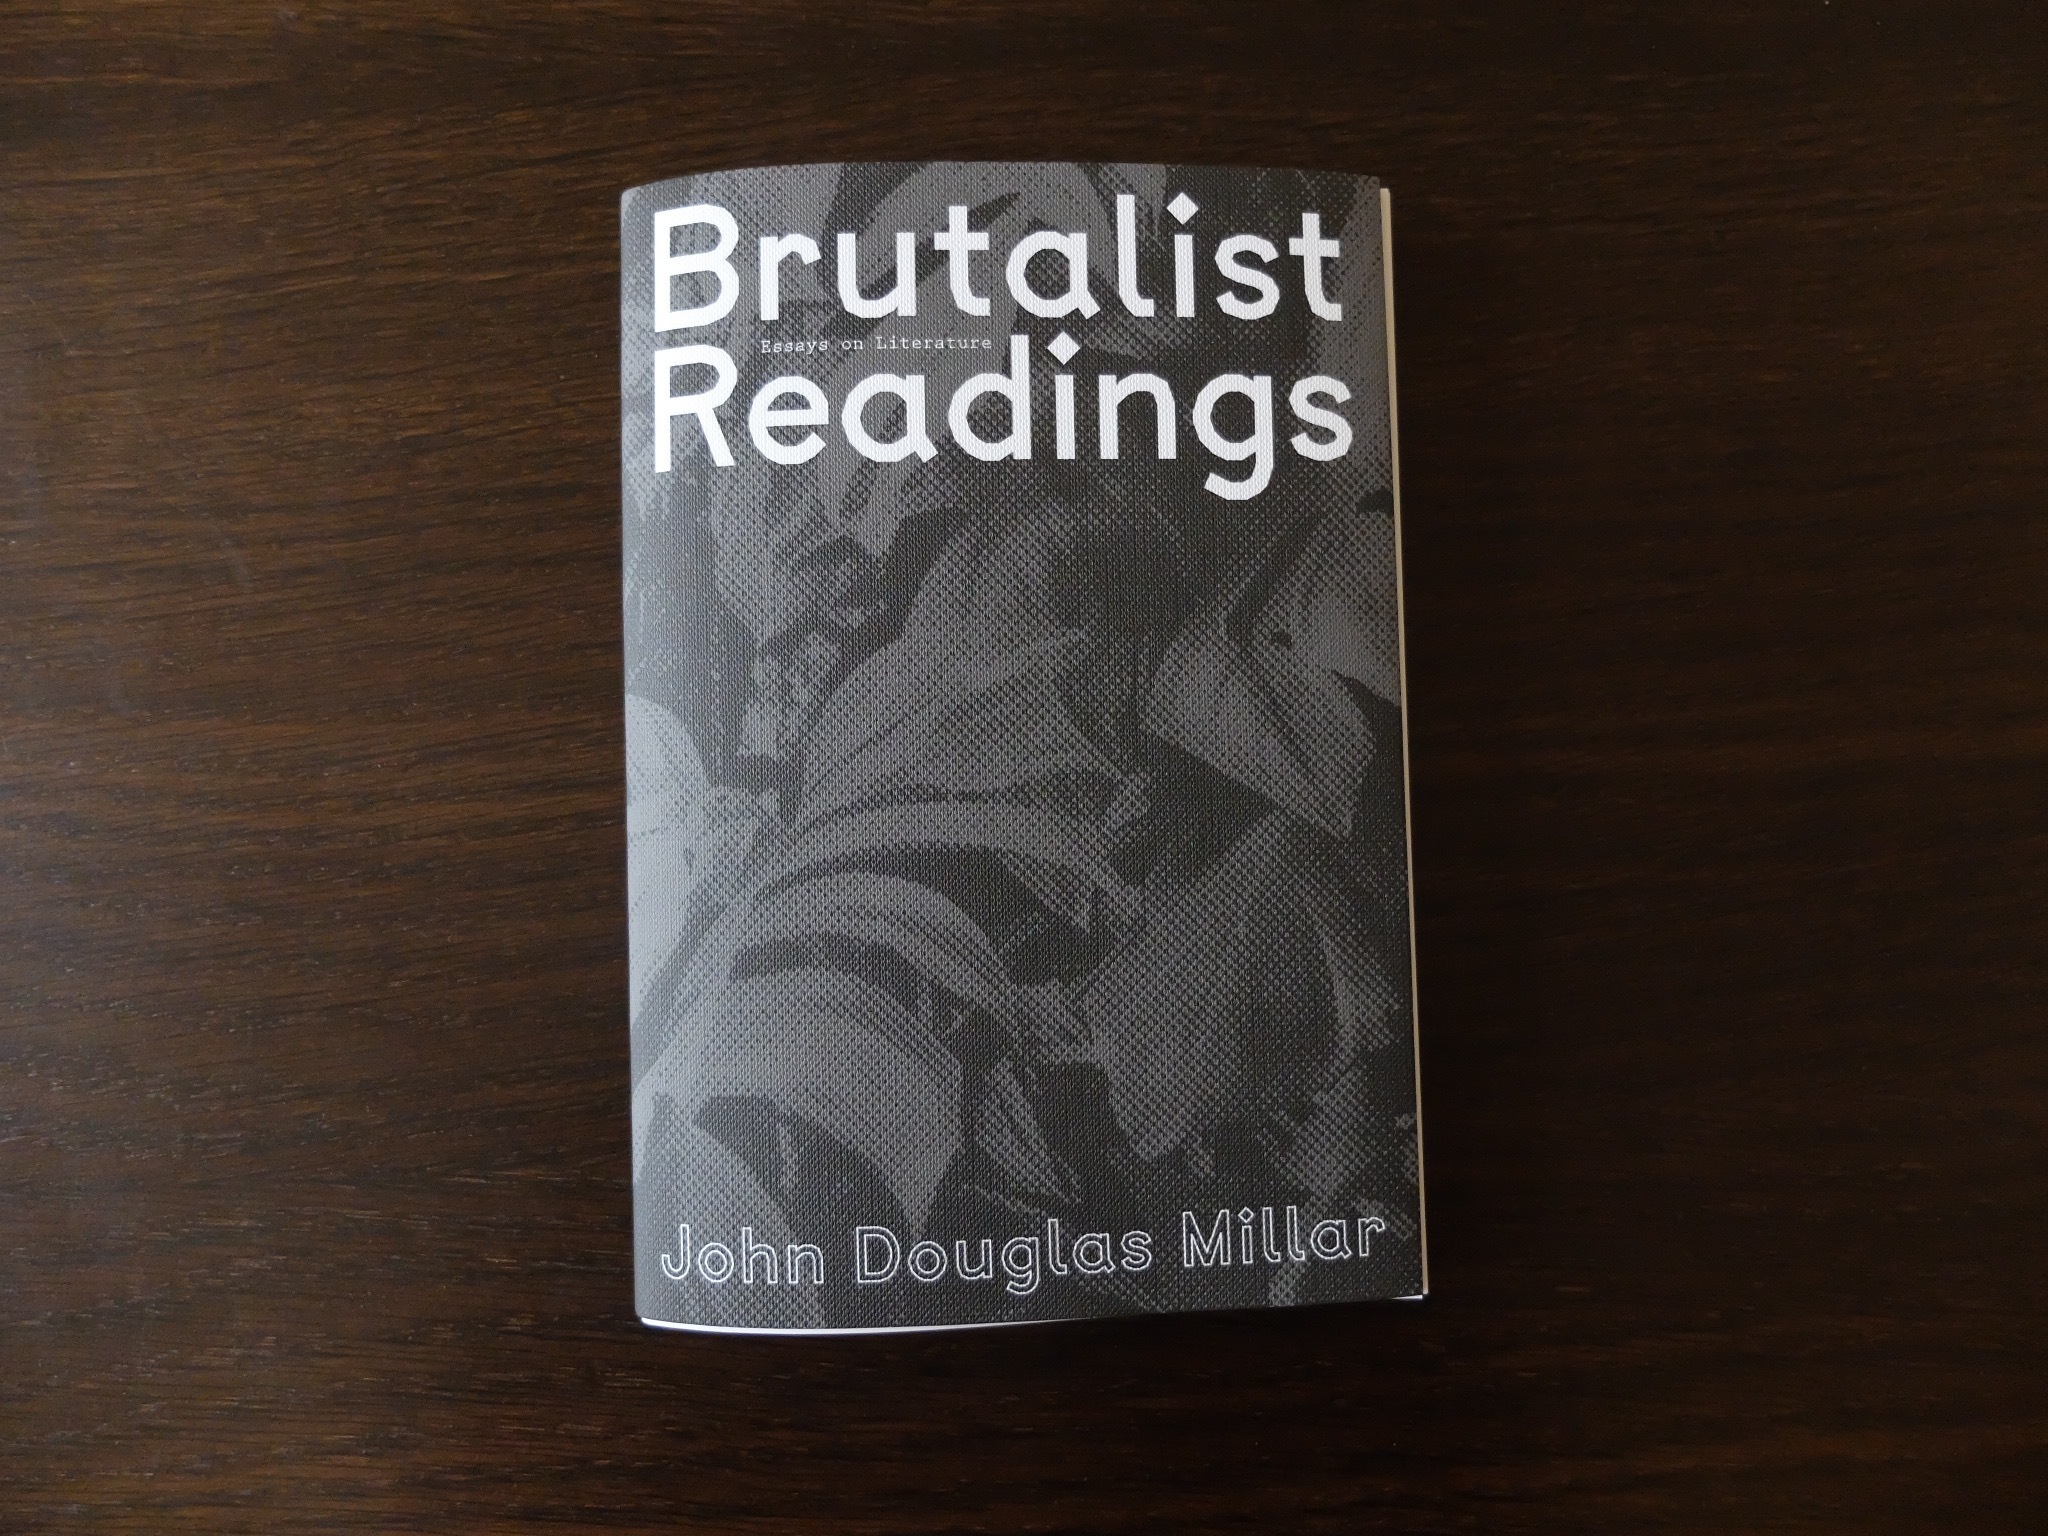 john douglas millar s brutalist readings essays on literature editor s note published in 2016 john douglas millar s brutalist readings essays on literature examines writing in the context of contemporary art